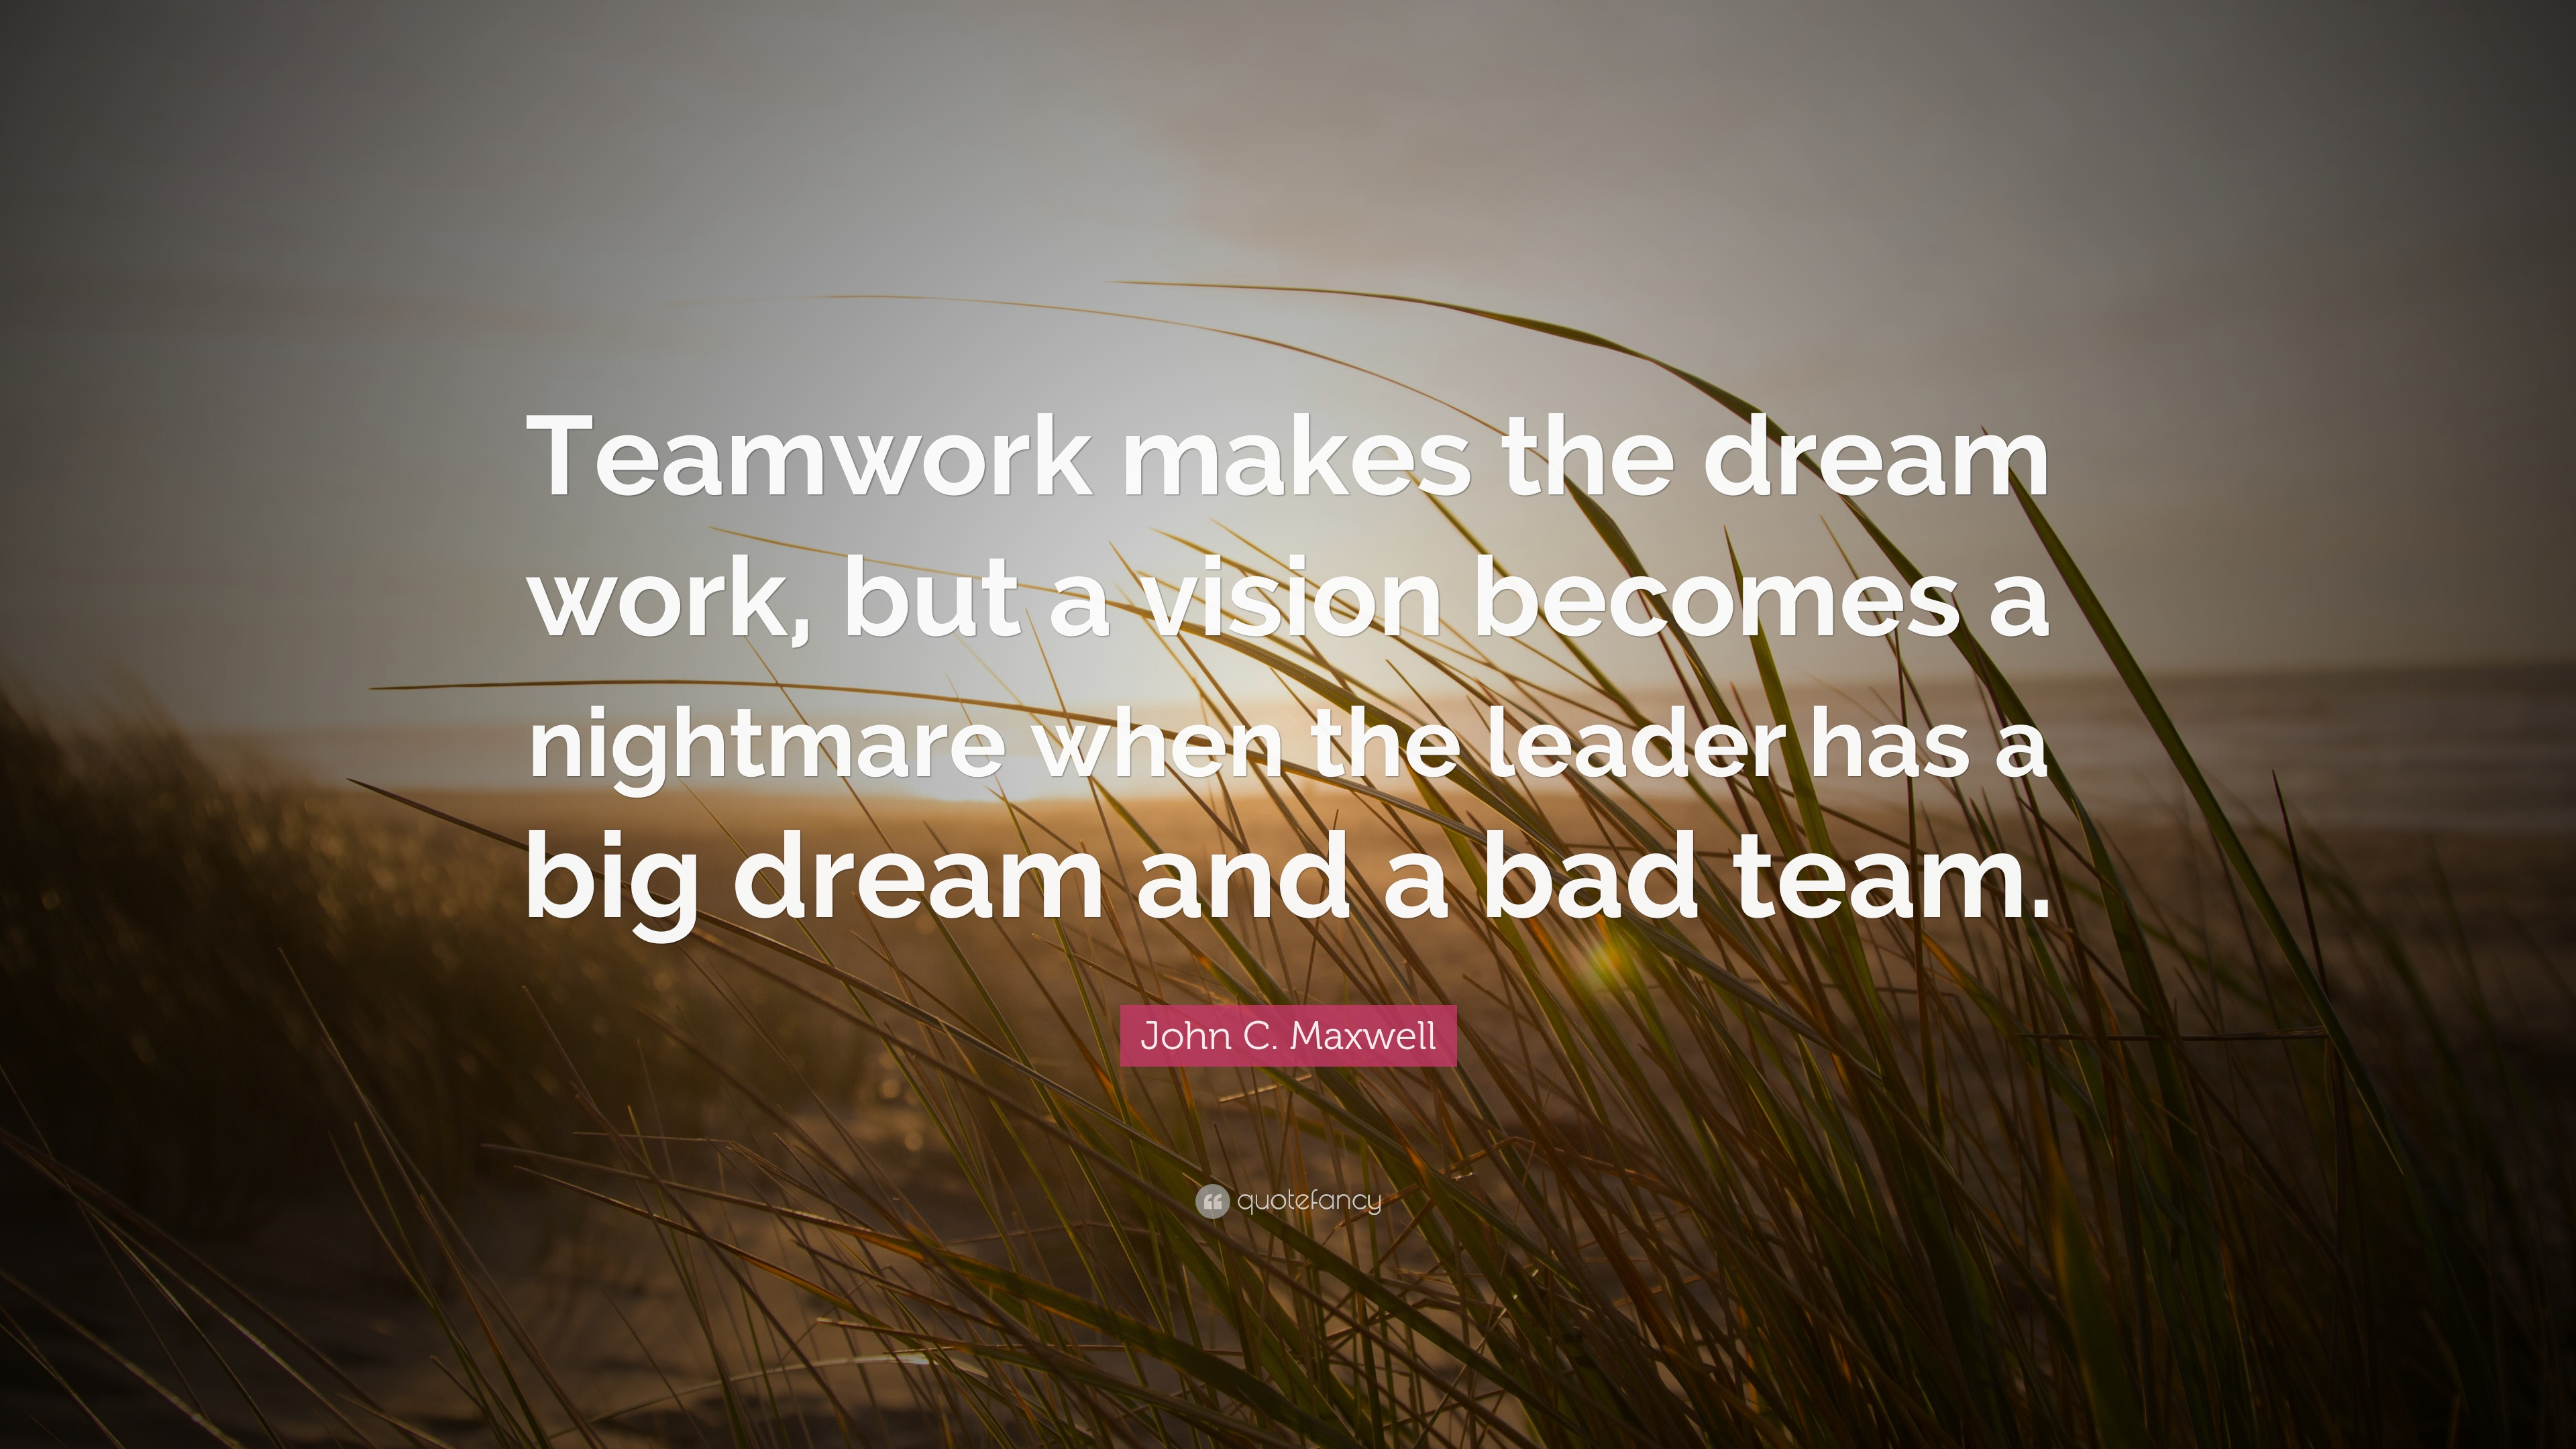 John C Maxwell Quote Teamwork Makes The Dream Work But A Vision